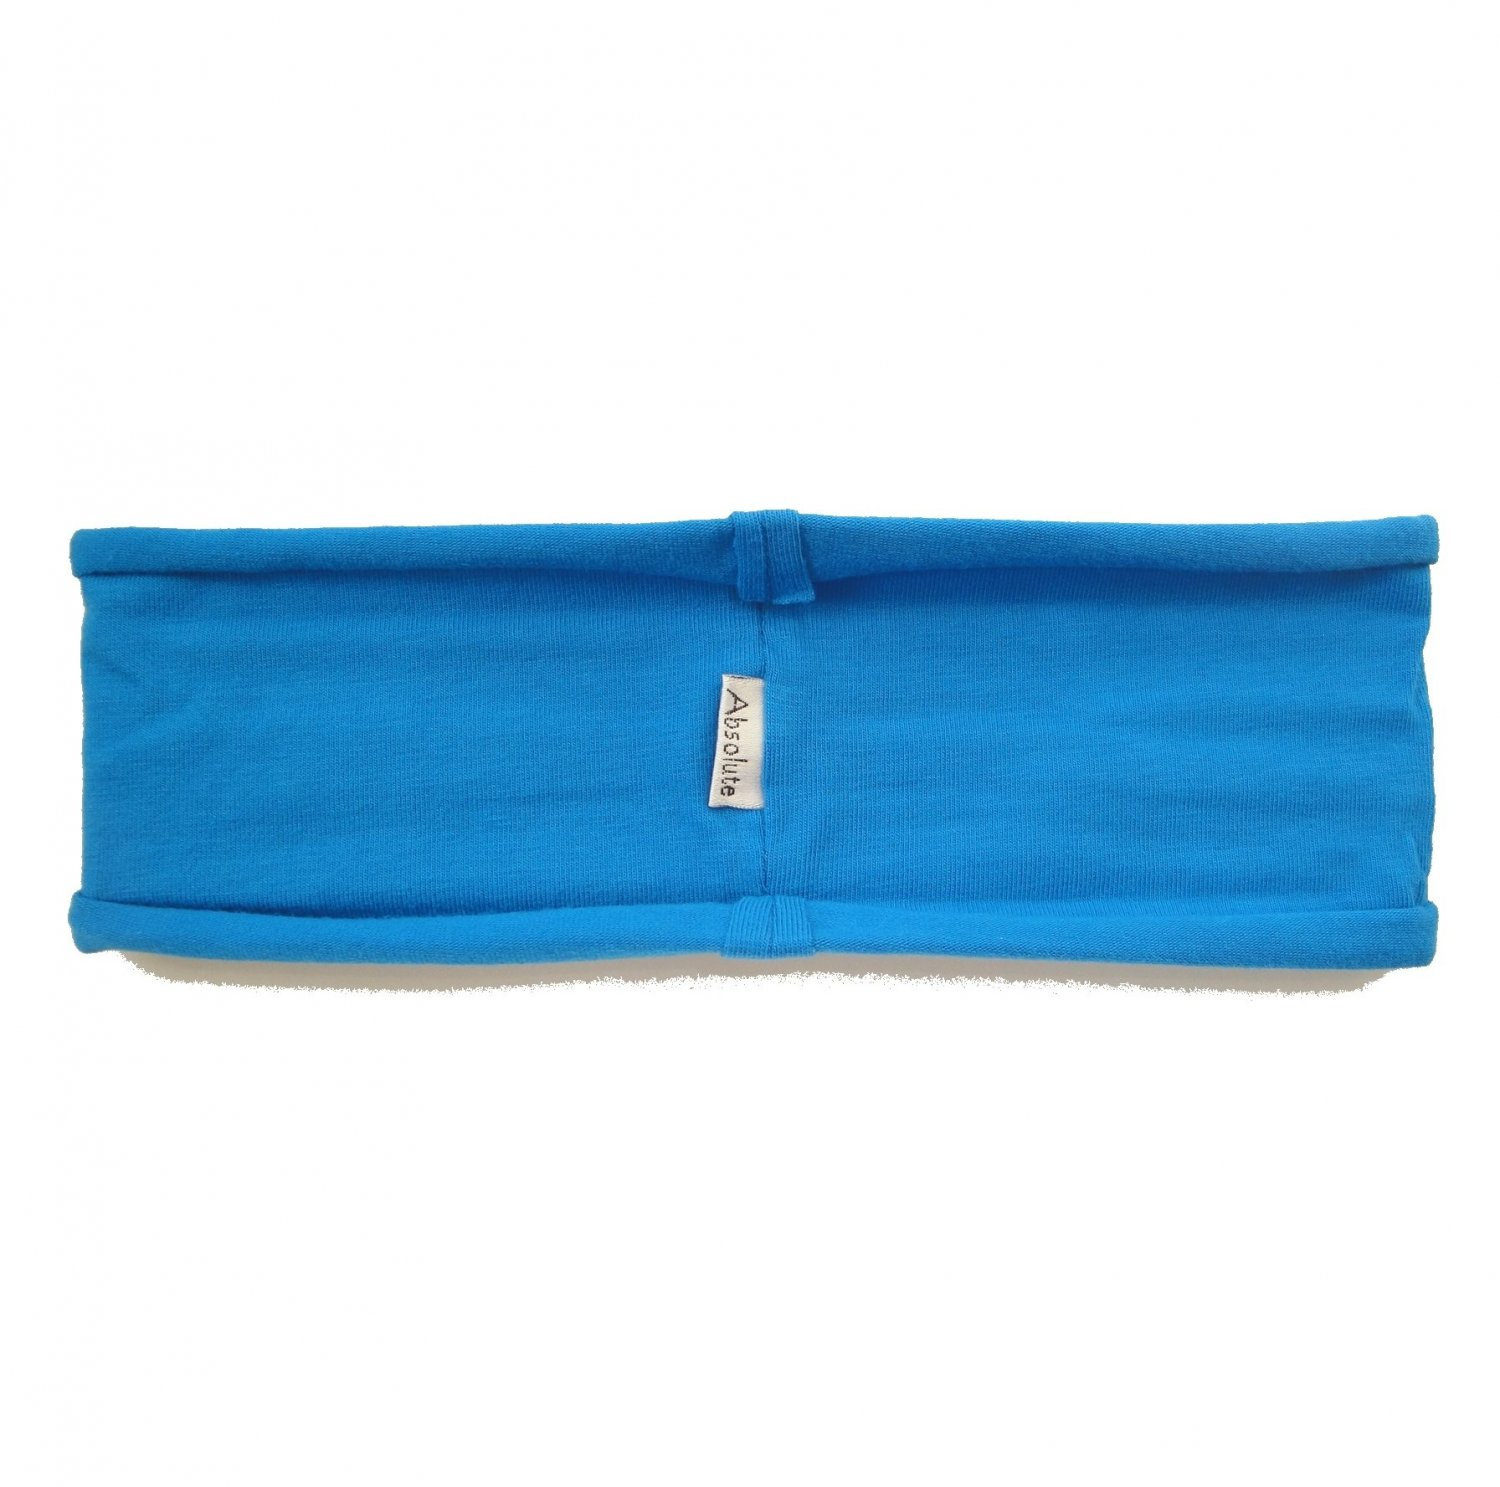 Headband (Blue) stretchy hBand for yoga, pilates, exercise, sports, sweatband or any activities